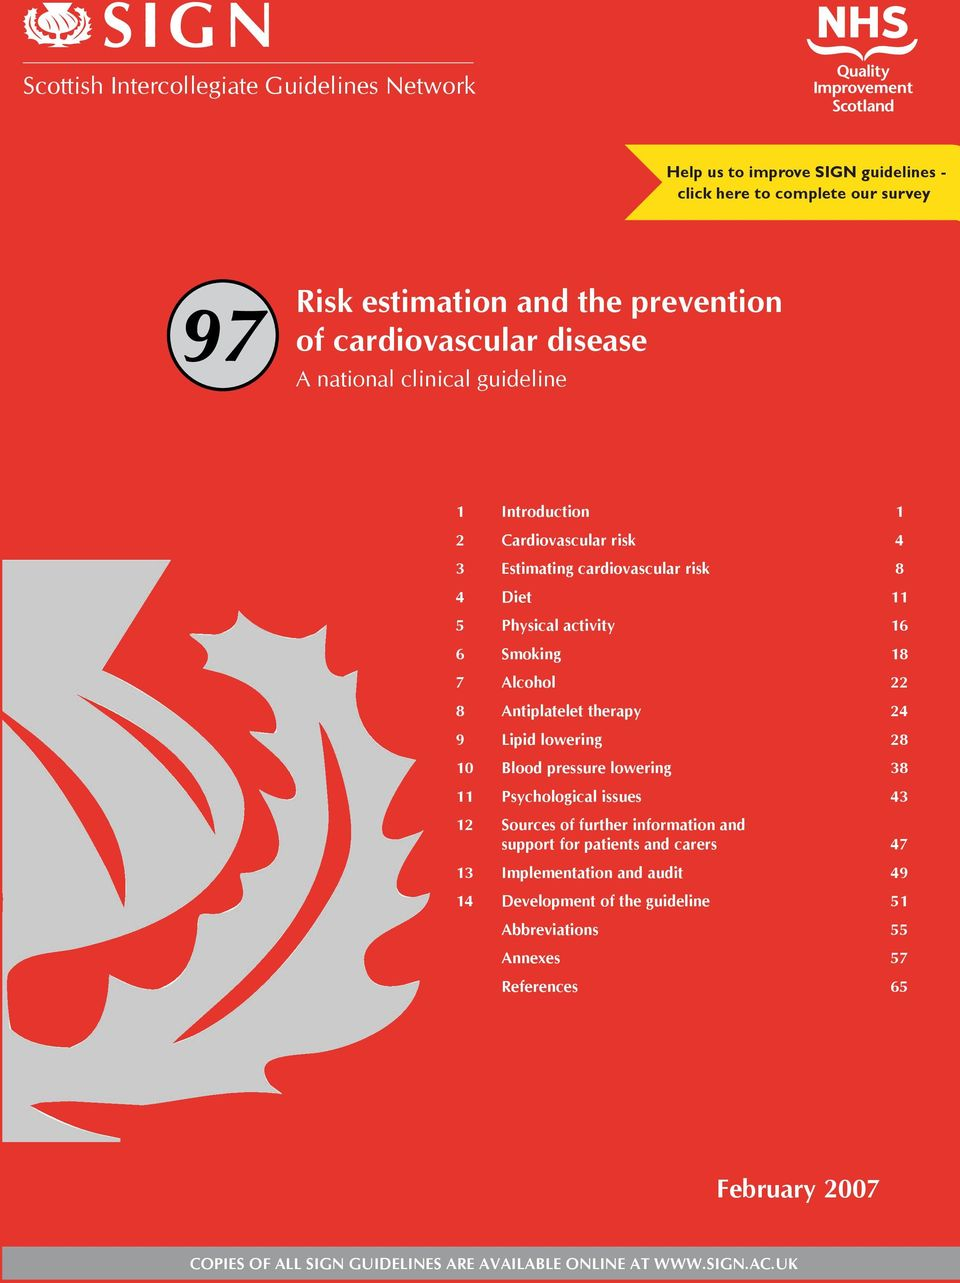 Antiplatelet therapy 2 9 Lipid lowering 28 10 Blood pressure lowering 38 11 Psychological issues 3 12 Sources of further information and support for patients and carers 7 13